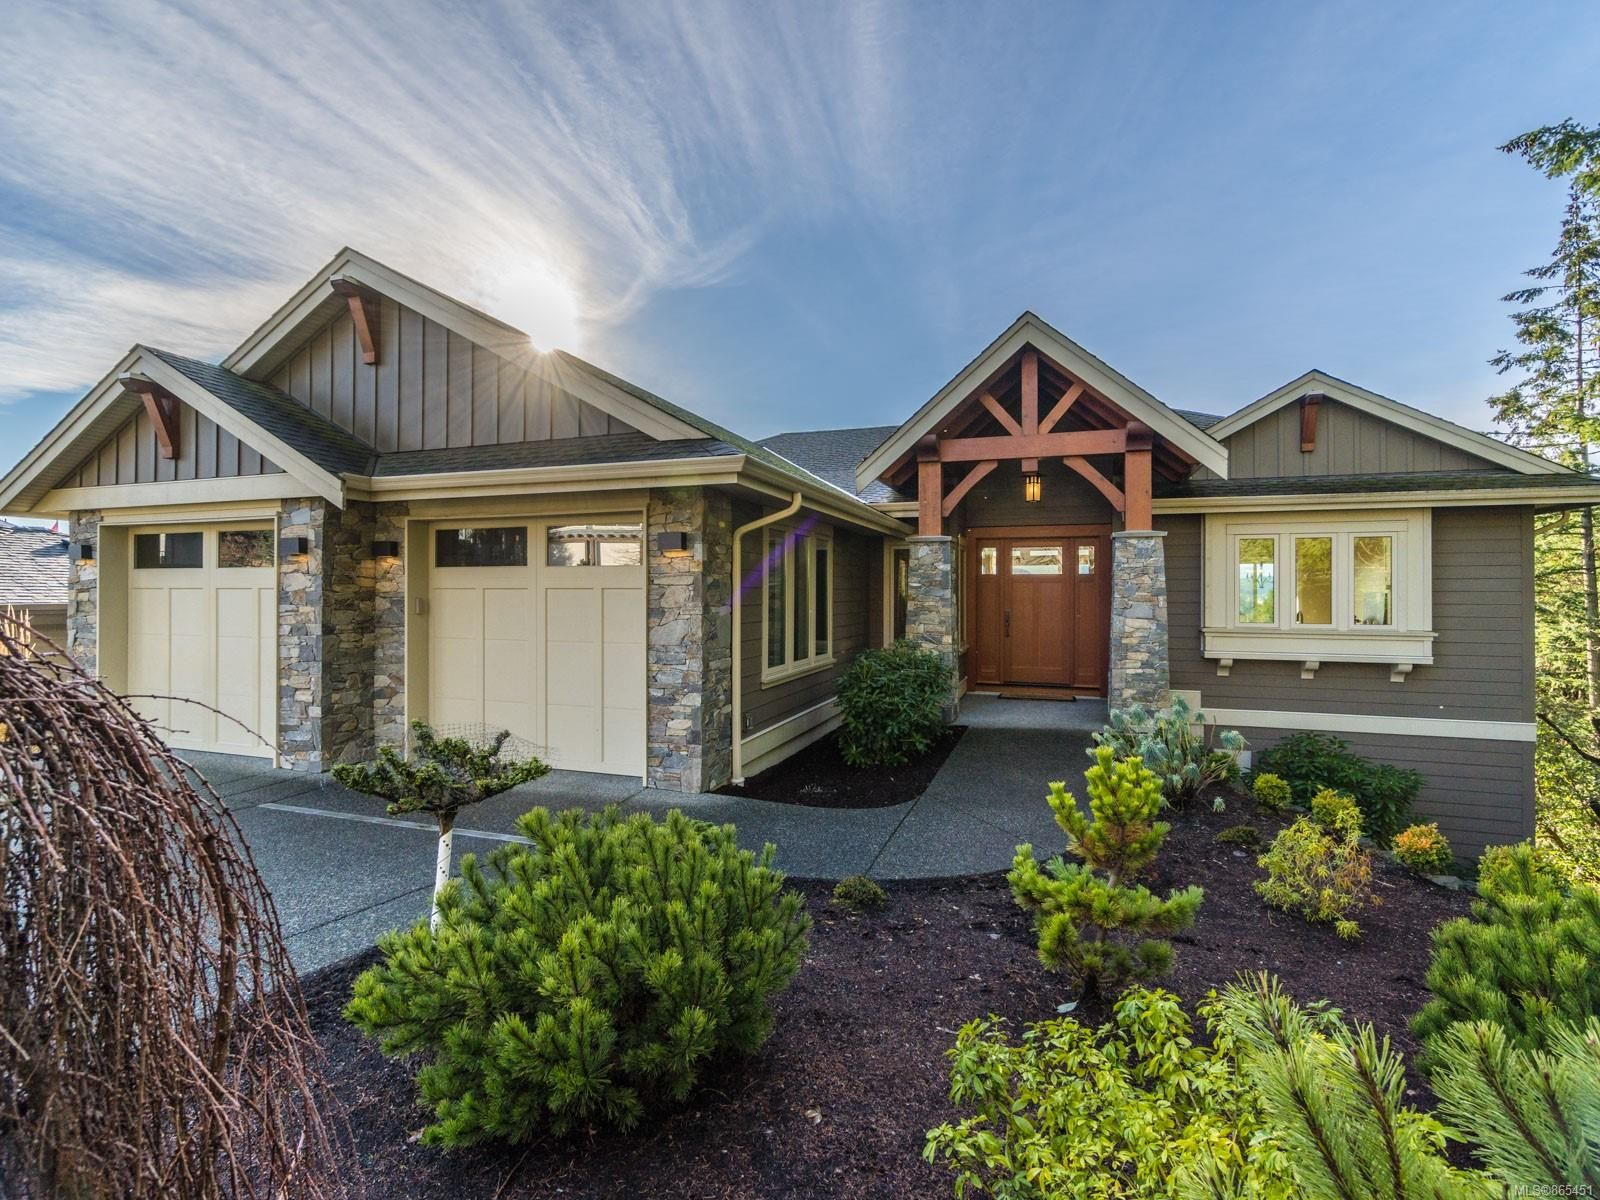 Main Photo: 3740 Belaire Dr in : Na Hammond Bay House for sale (Nanaimo)  : MLS®# 865451